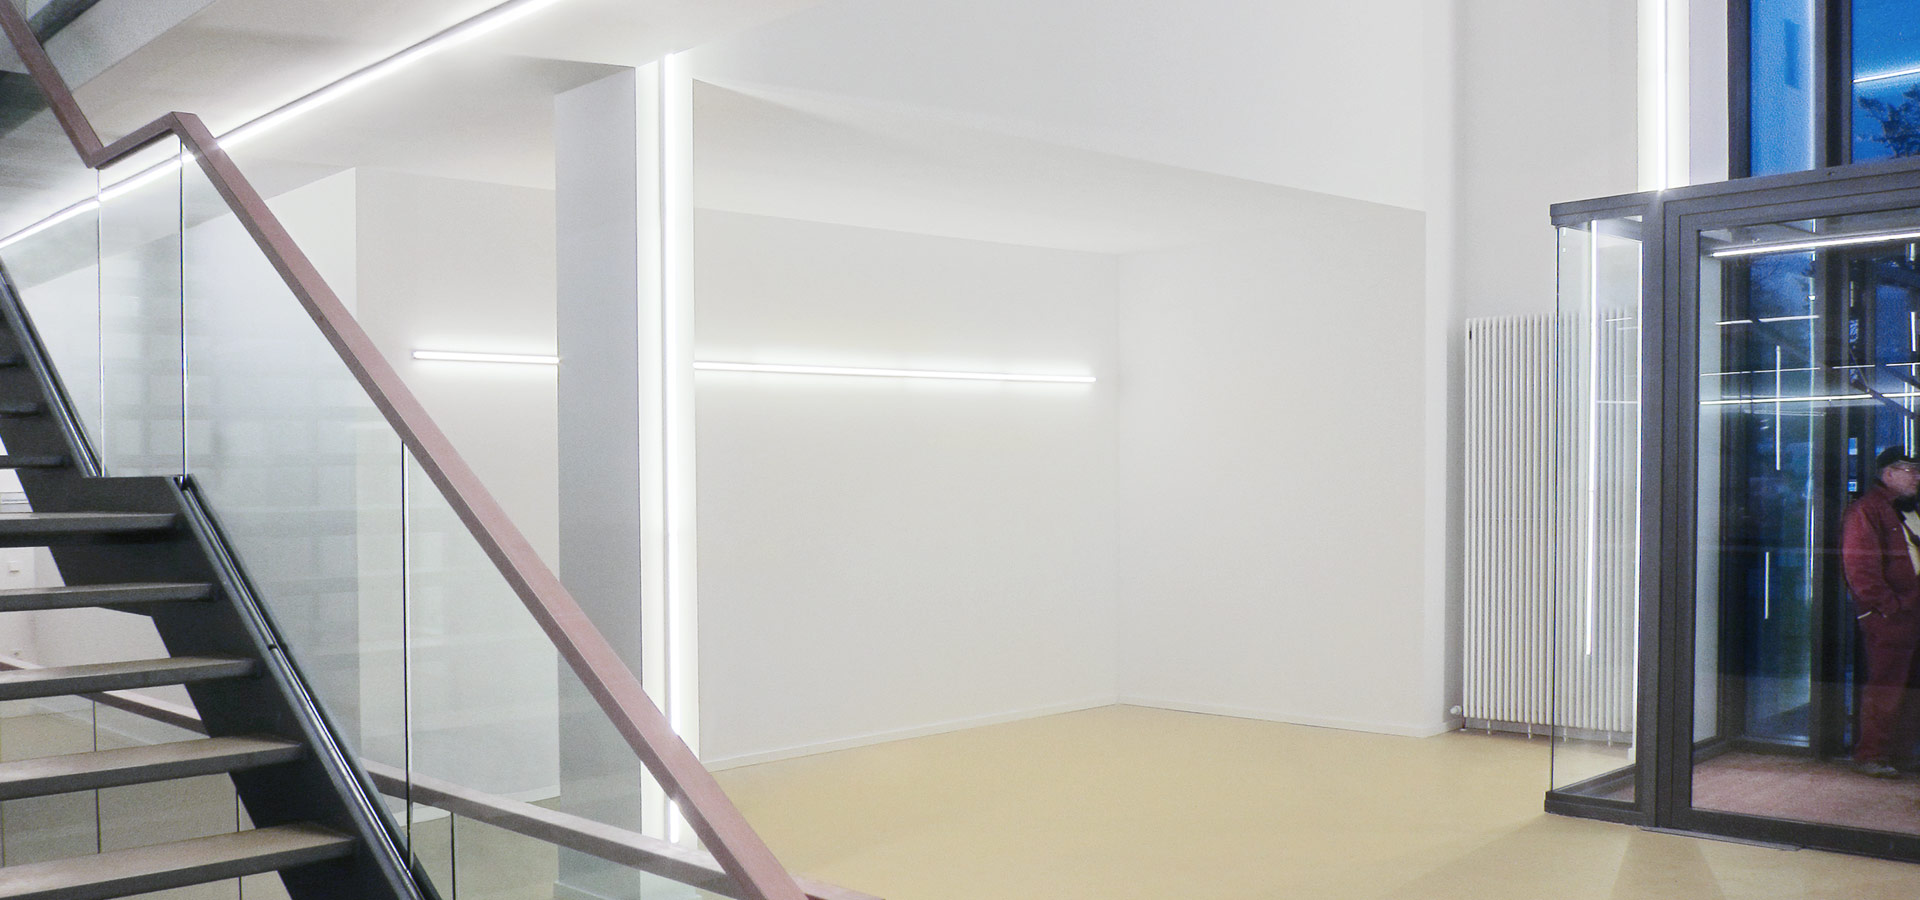 Luxsystem light line 20.2 emergency lighting for corridors